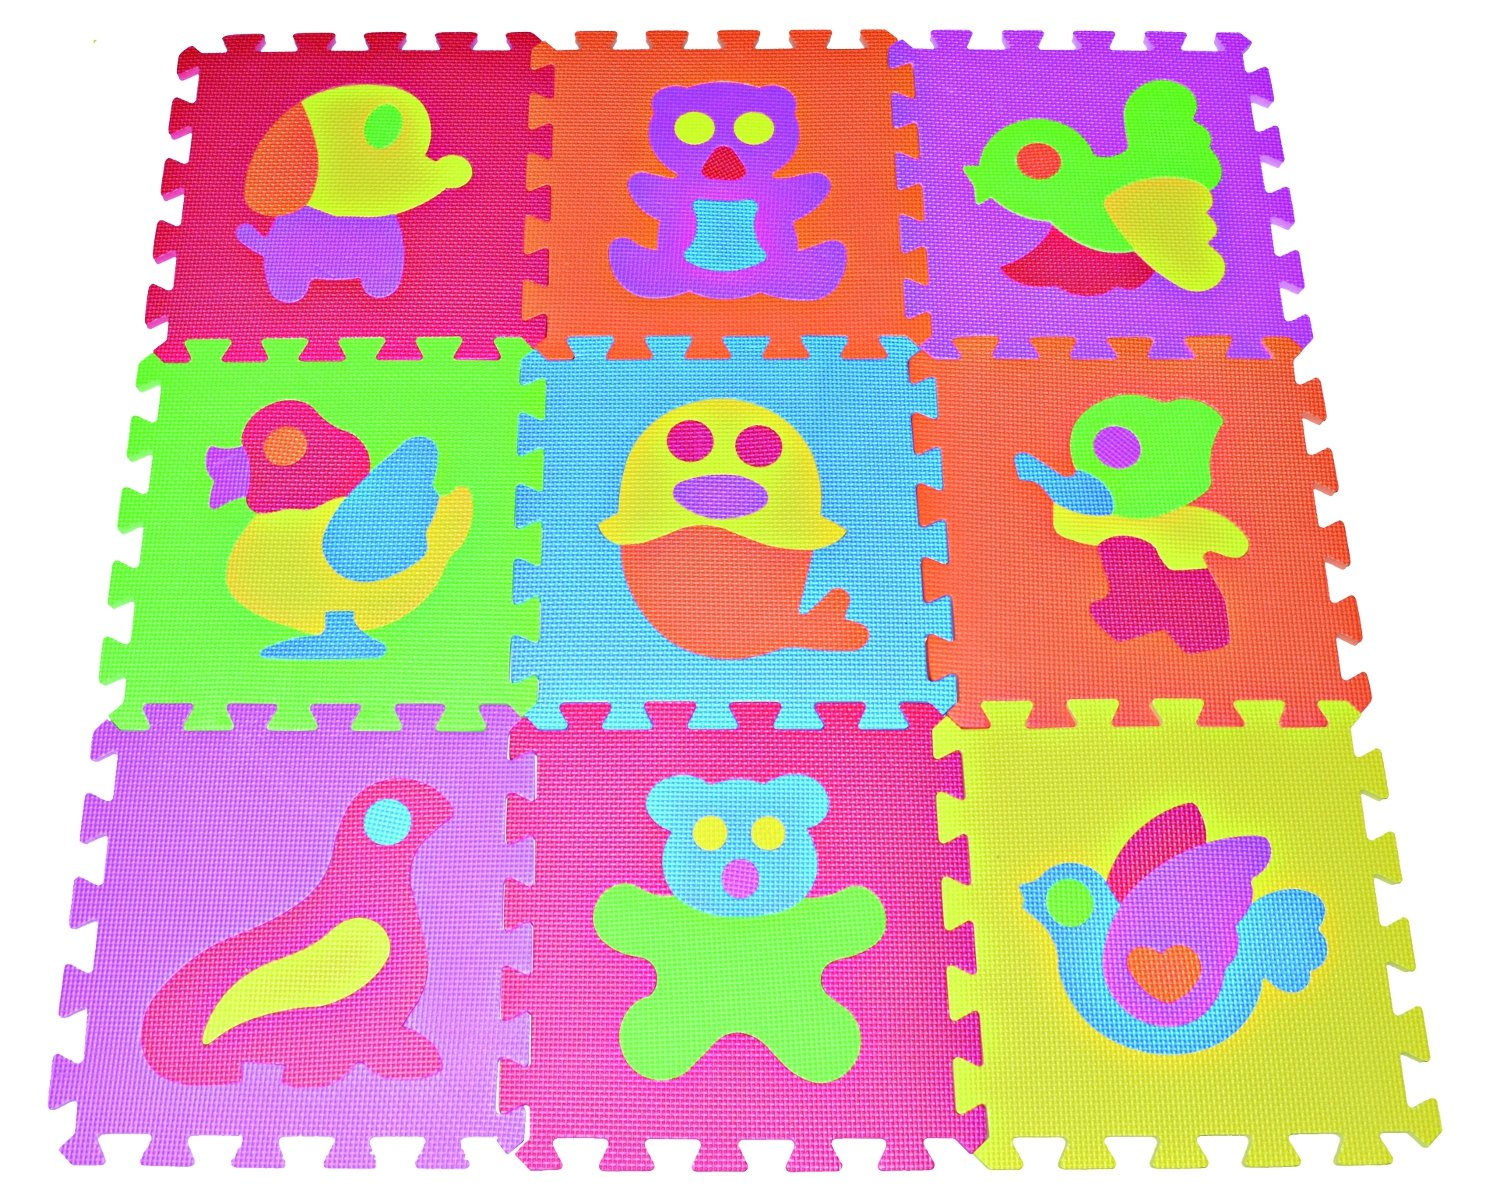 Amazon.com: Zoo Puzzle Play Mat 9-tile EVA Foam Rainbow Floor by ...